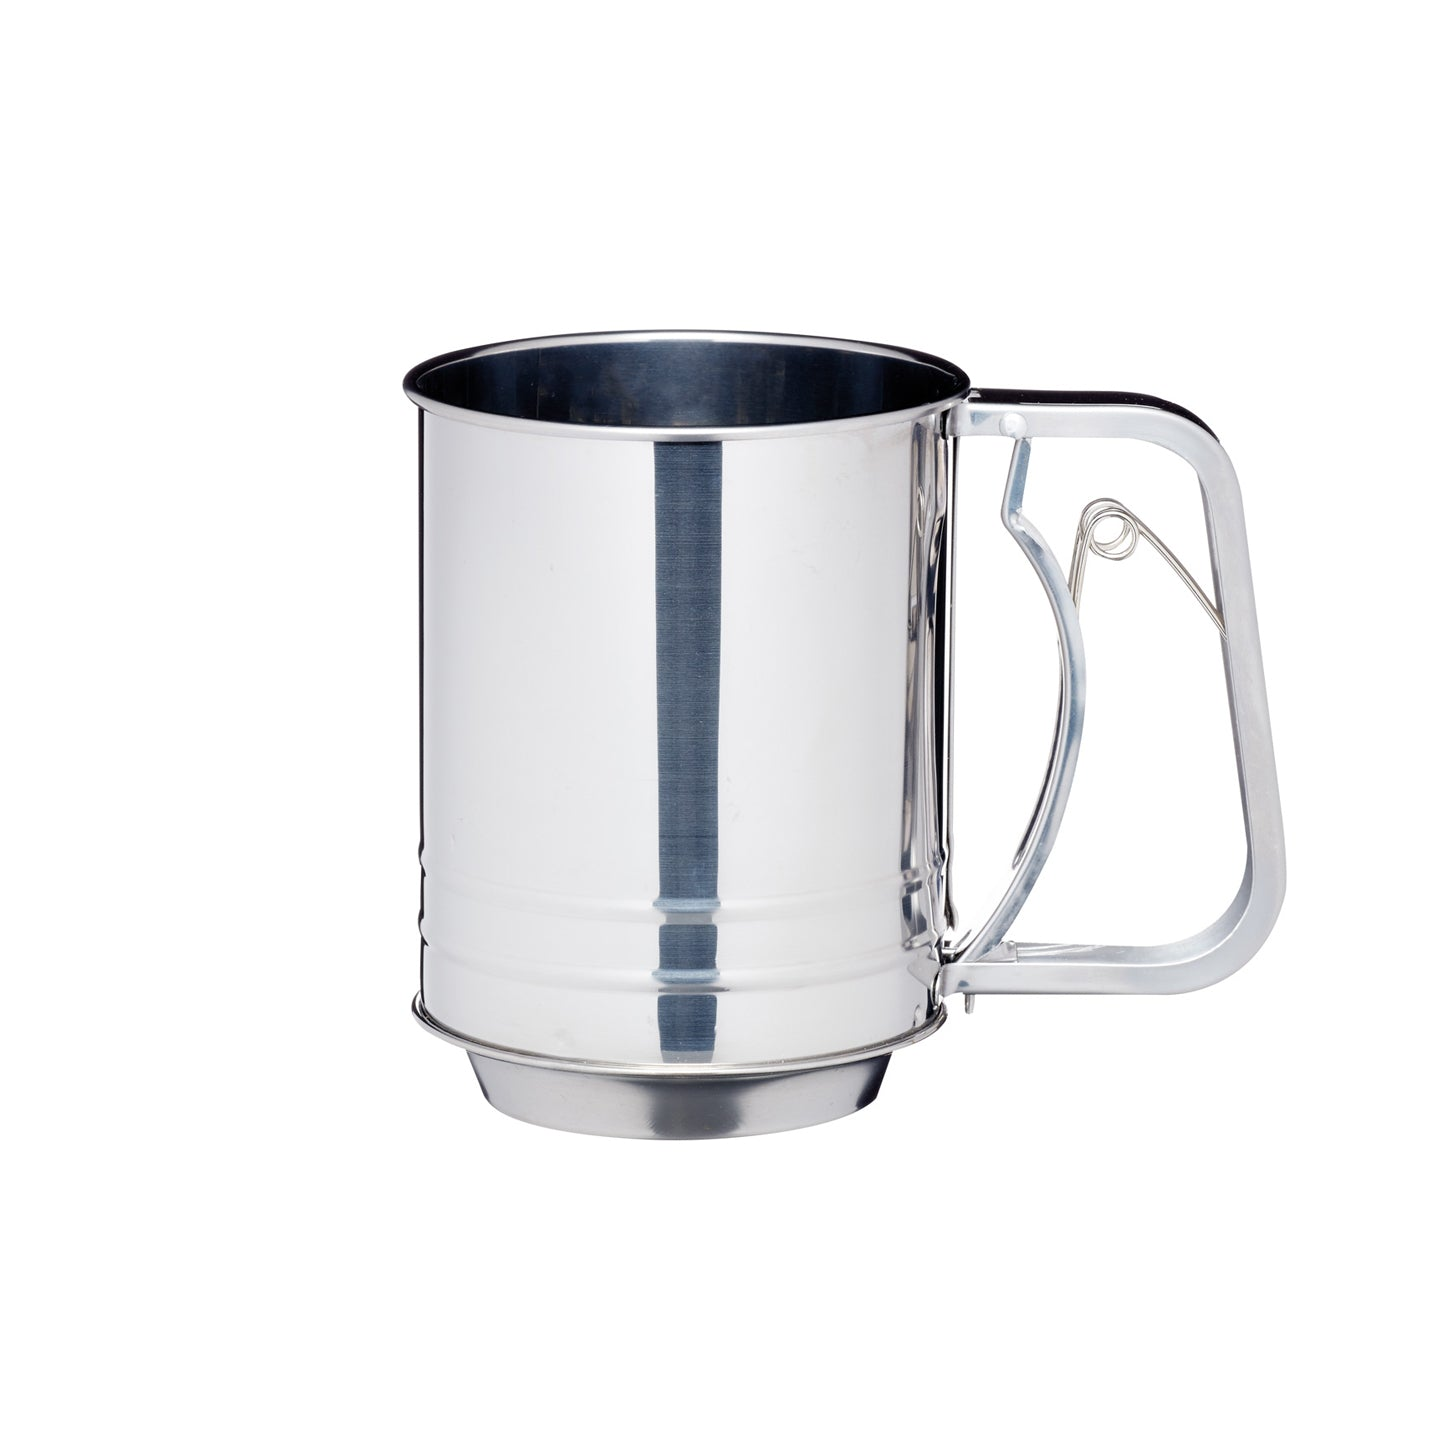 Stainless Steel Flour Sifter Borough Kitchen